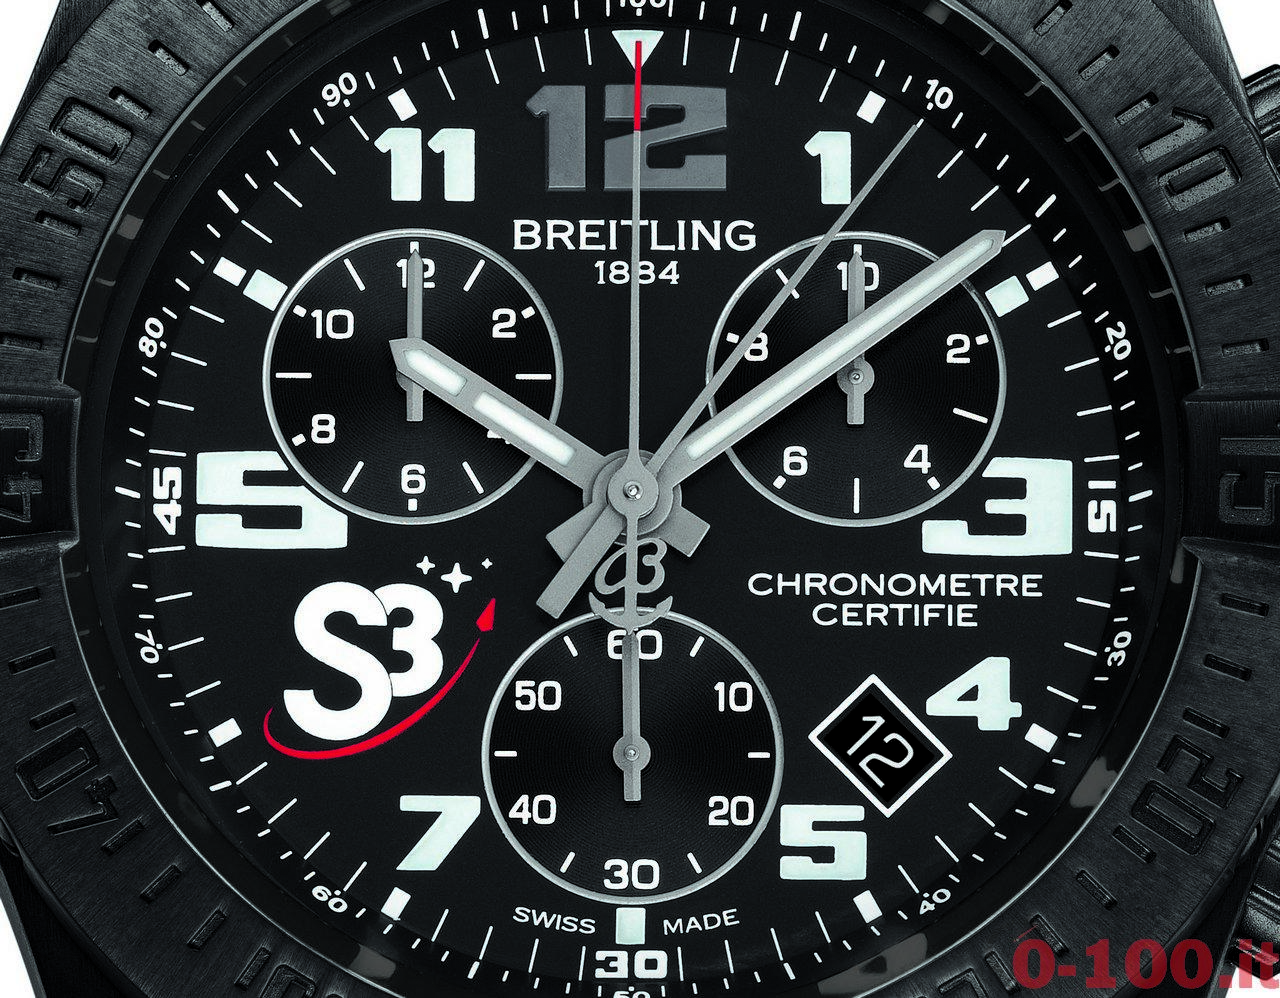 breitling-chronograph-s3-swiss-space-systems-0-100-7